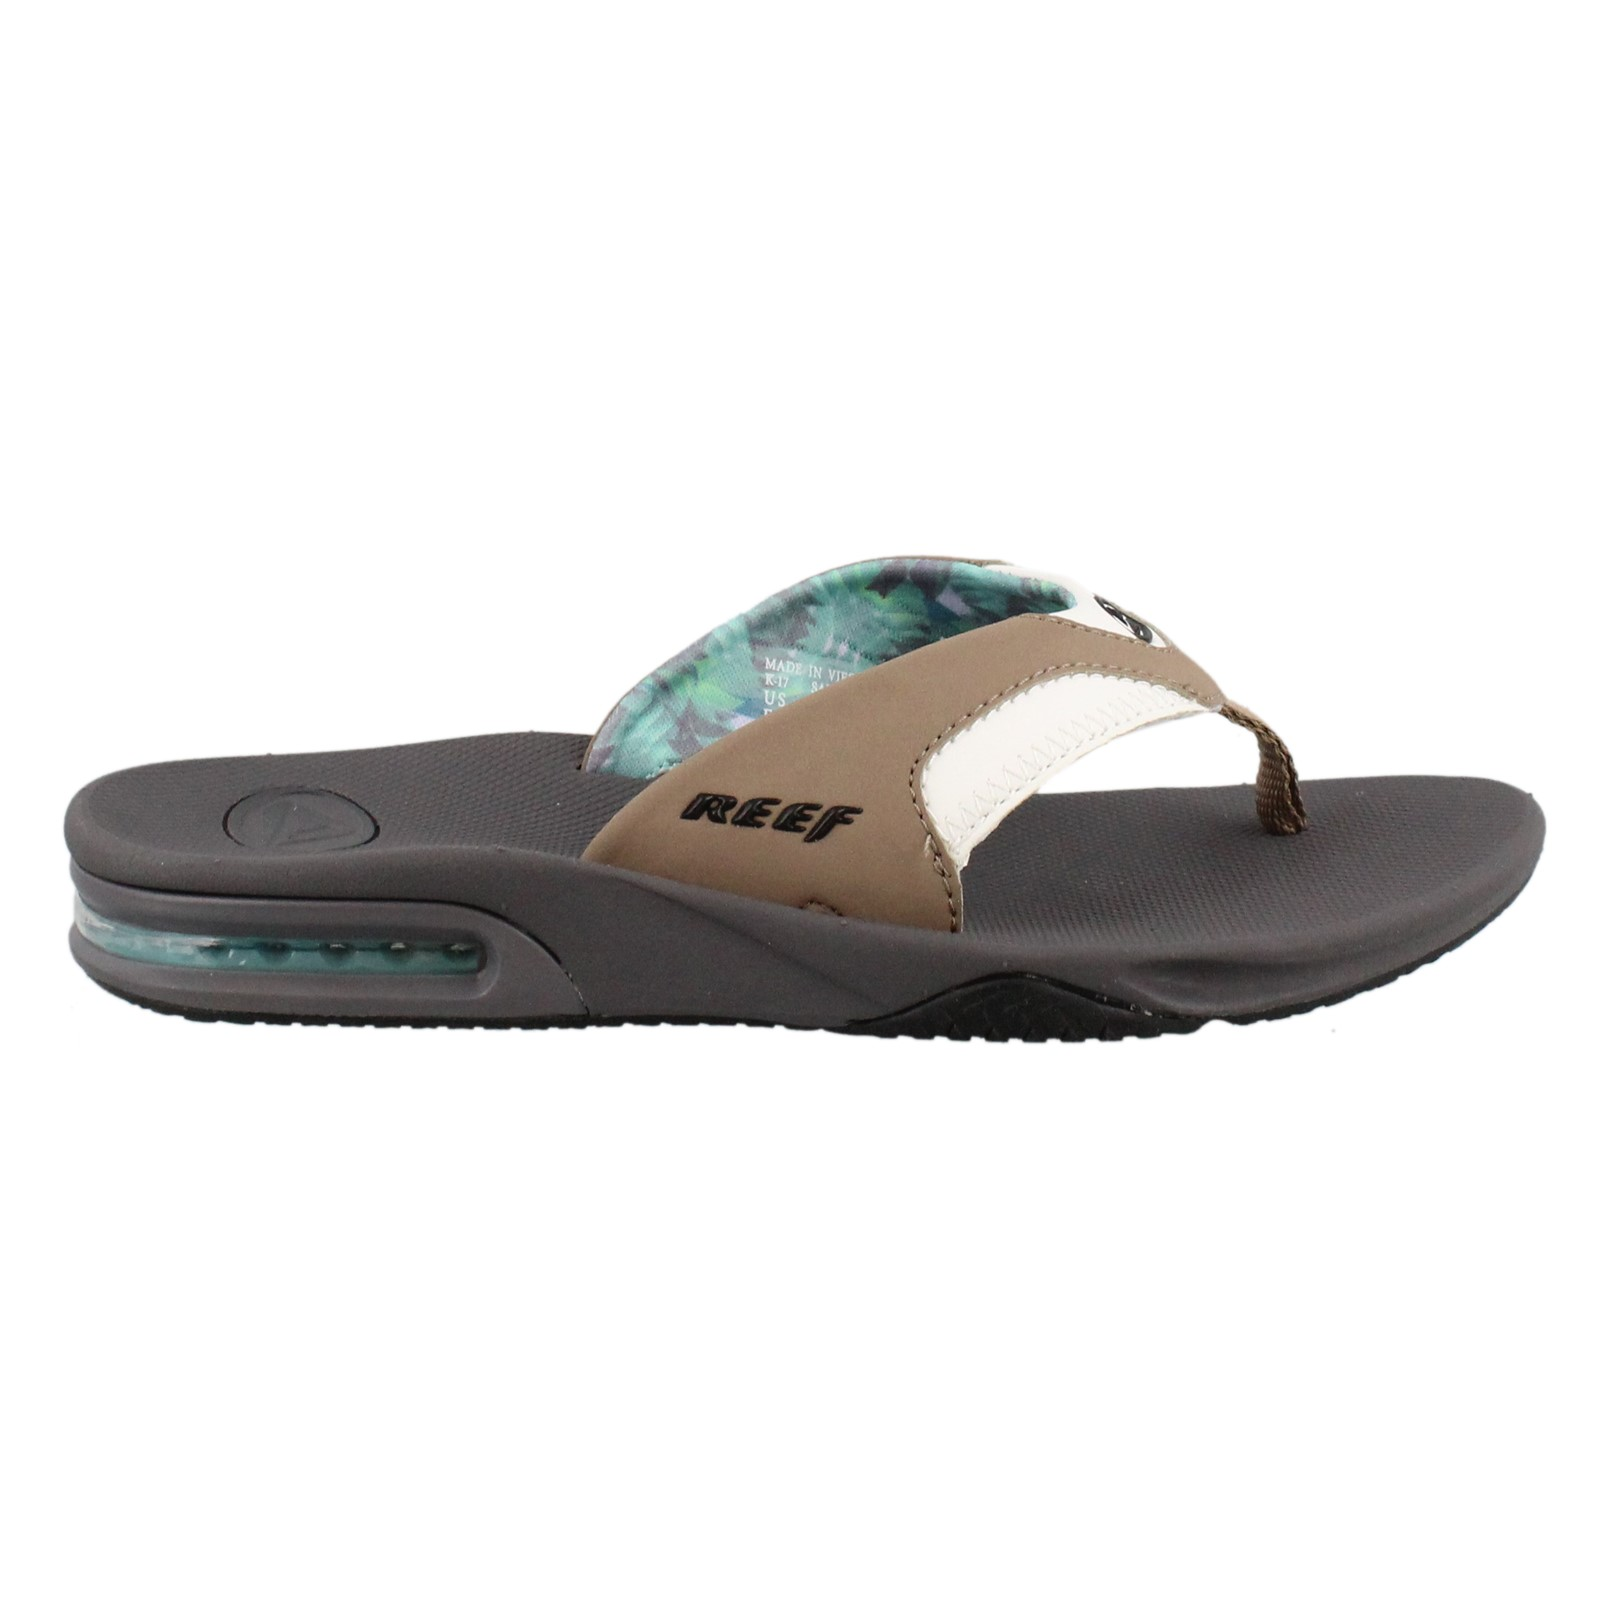 shop for best best quality limpid in sight Women's Reef, Fanning Flip Flop